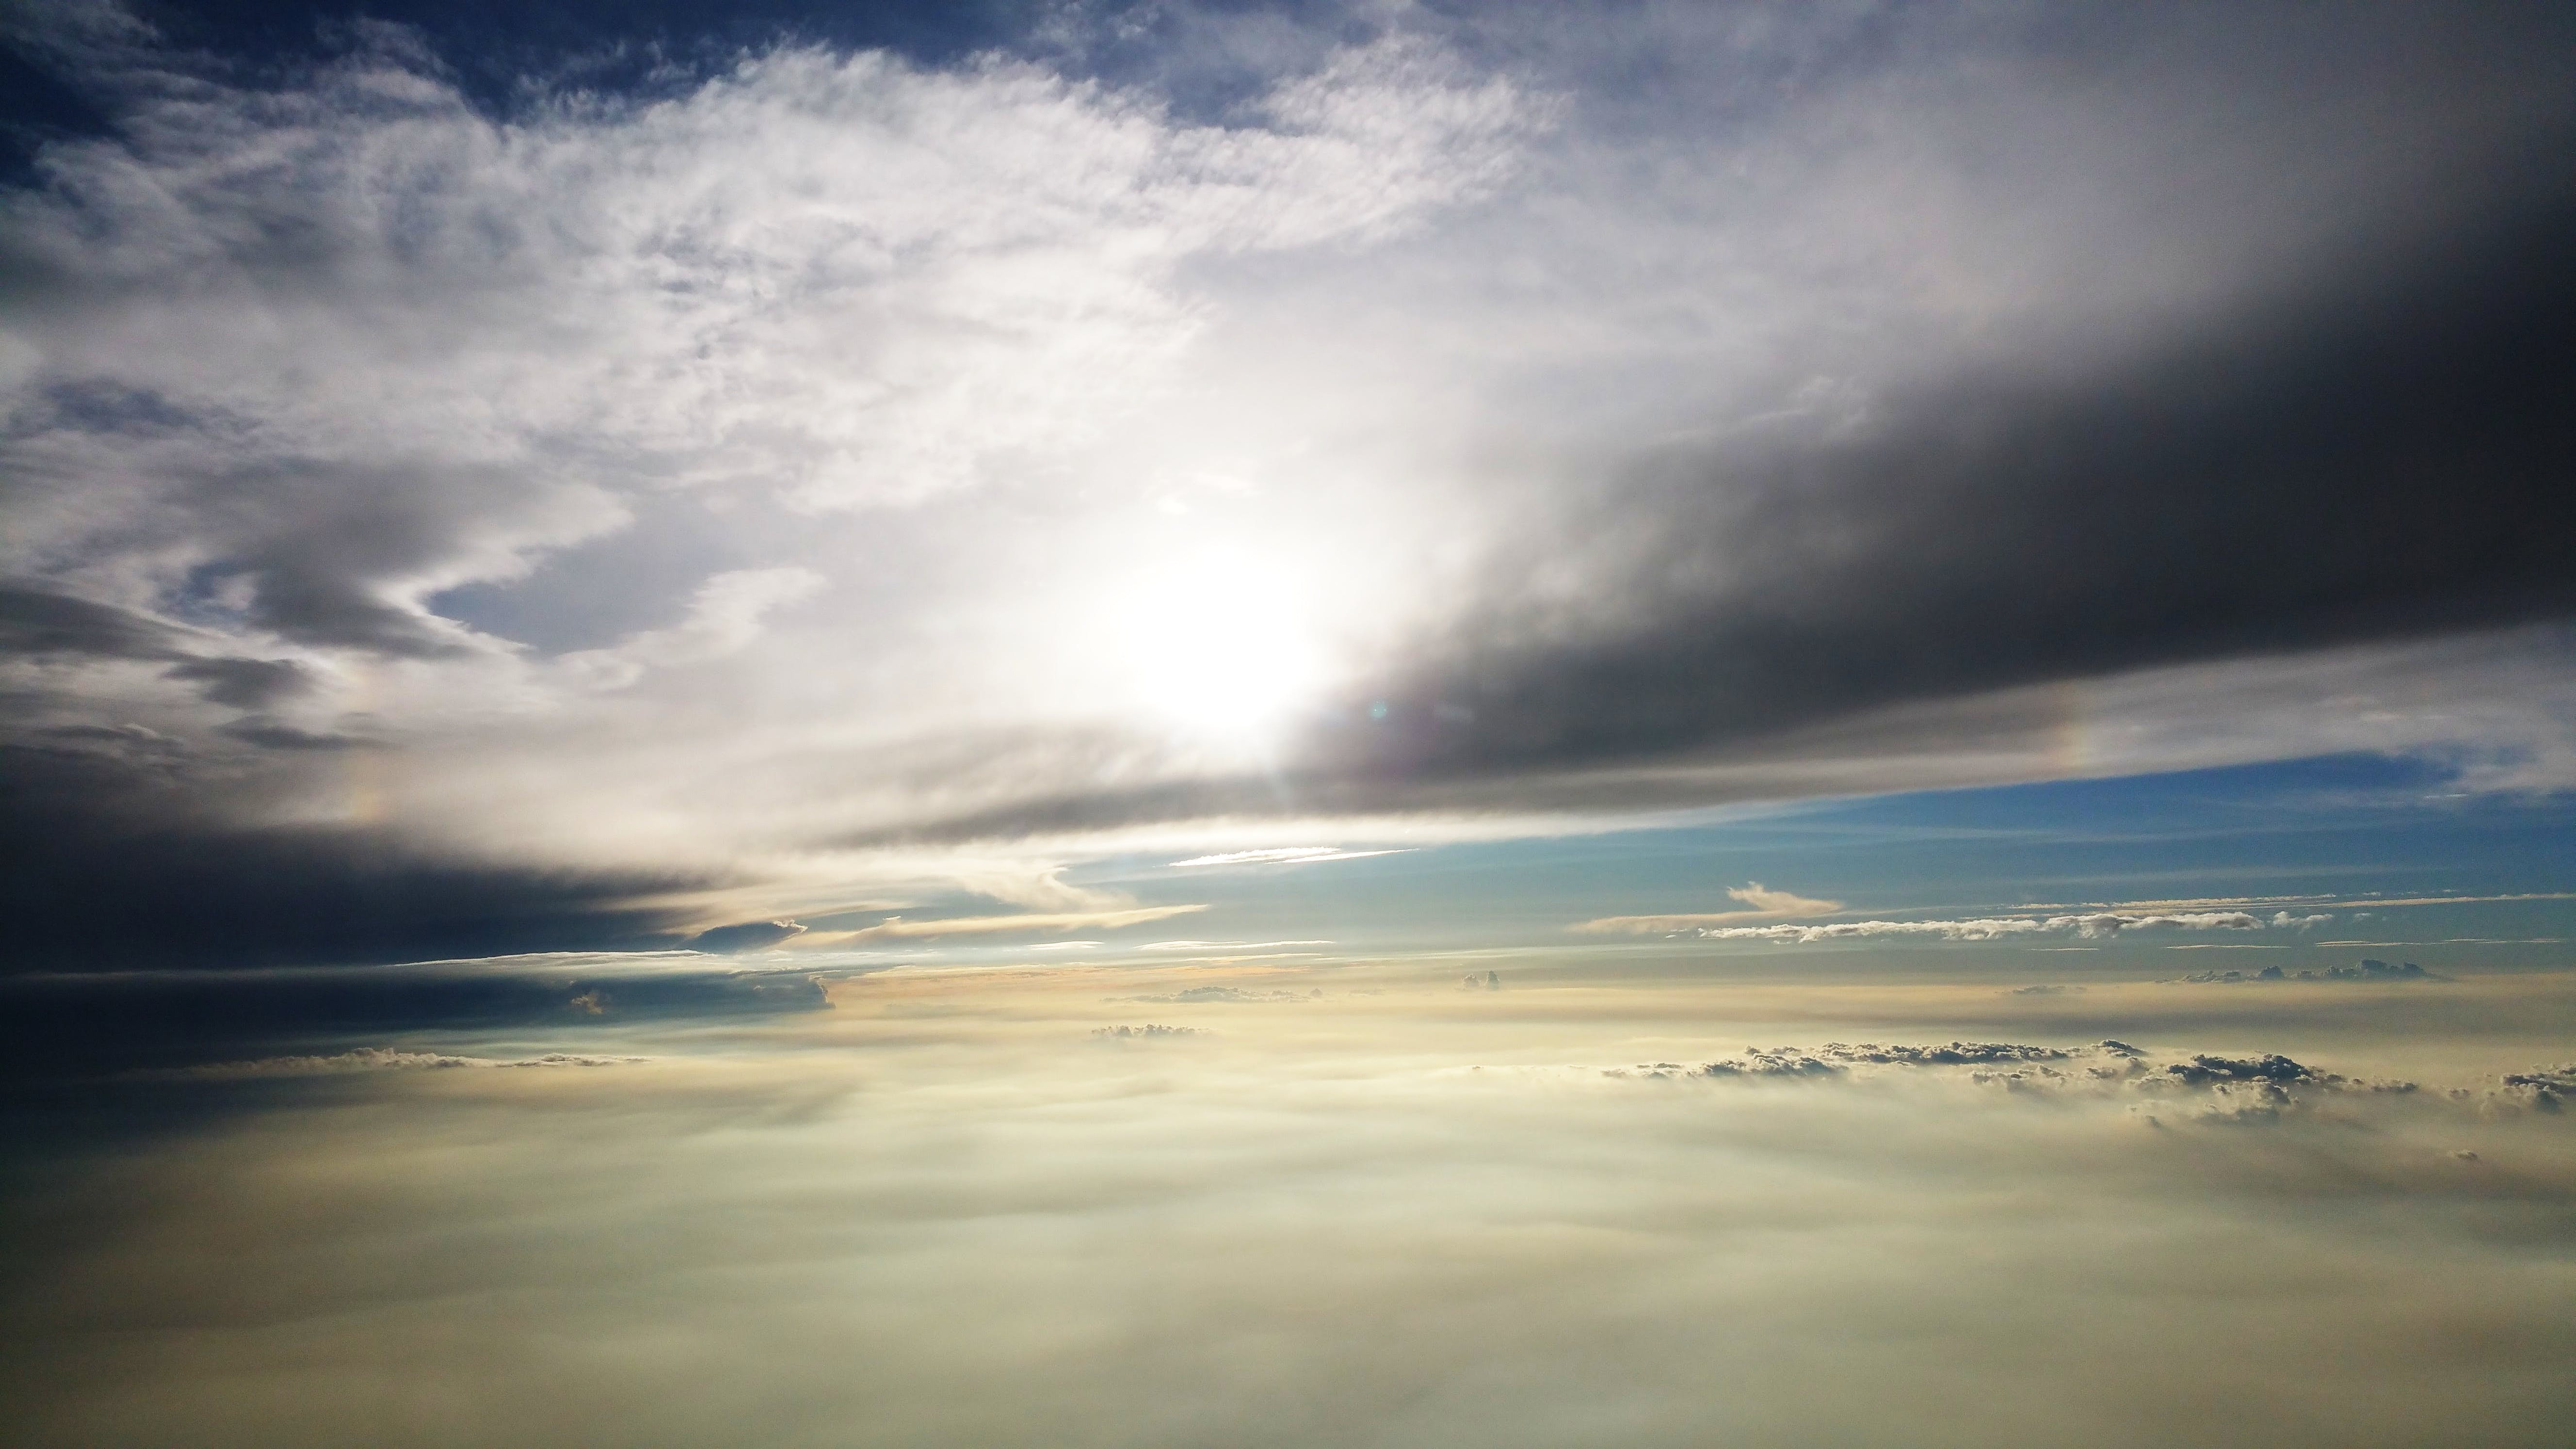 Sea Clouds Photography during Daytime